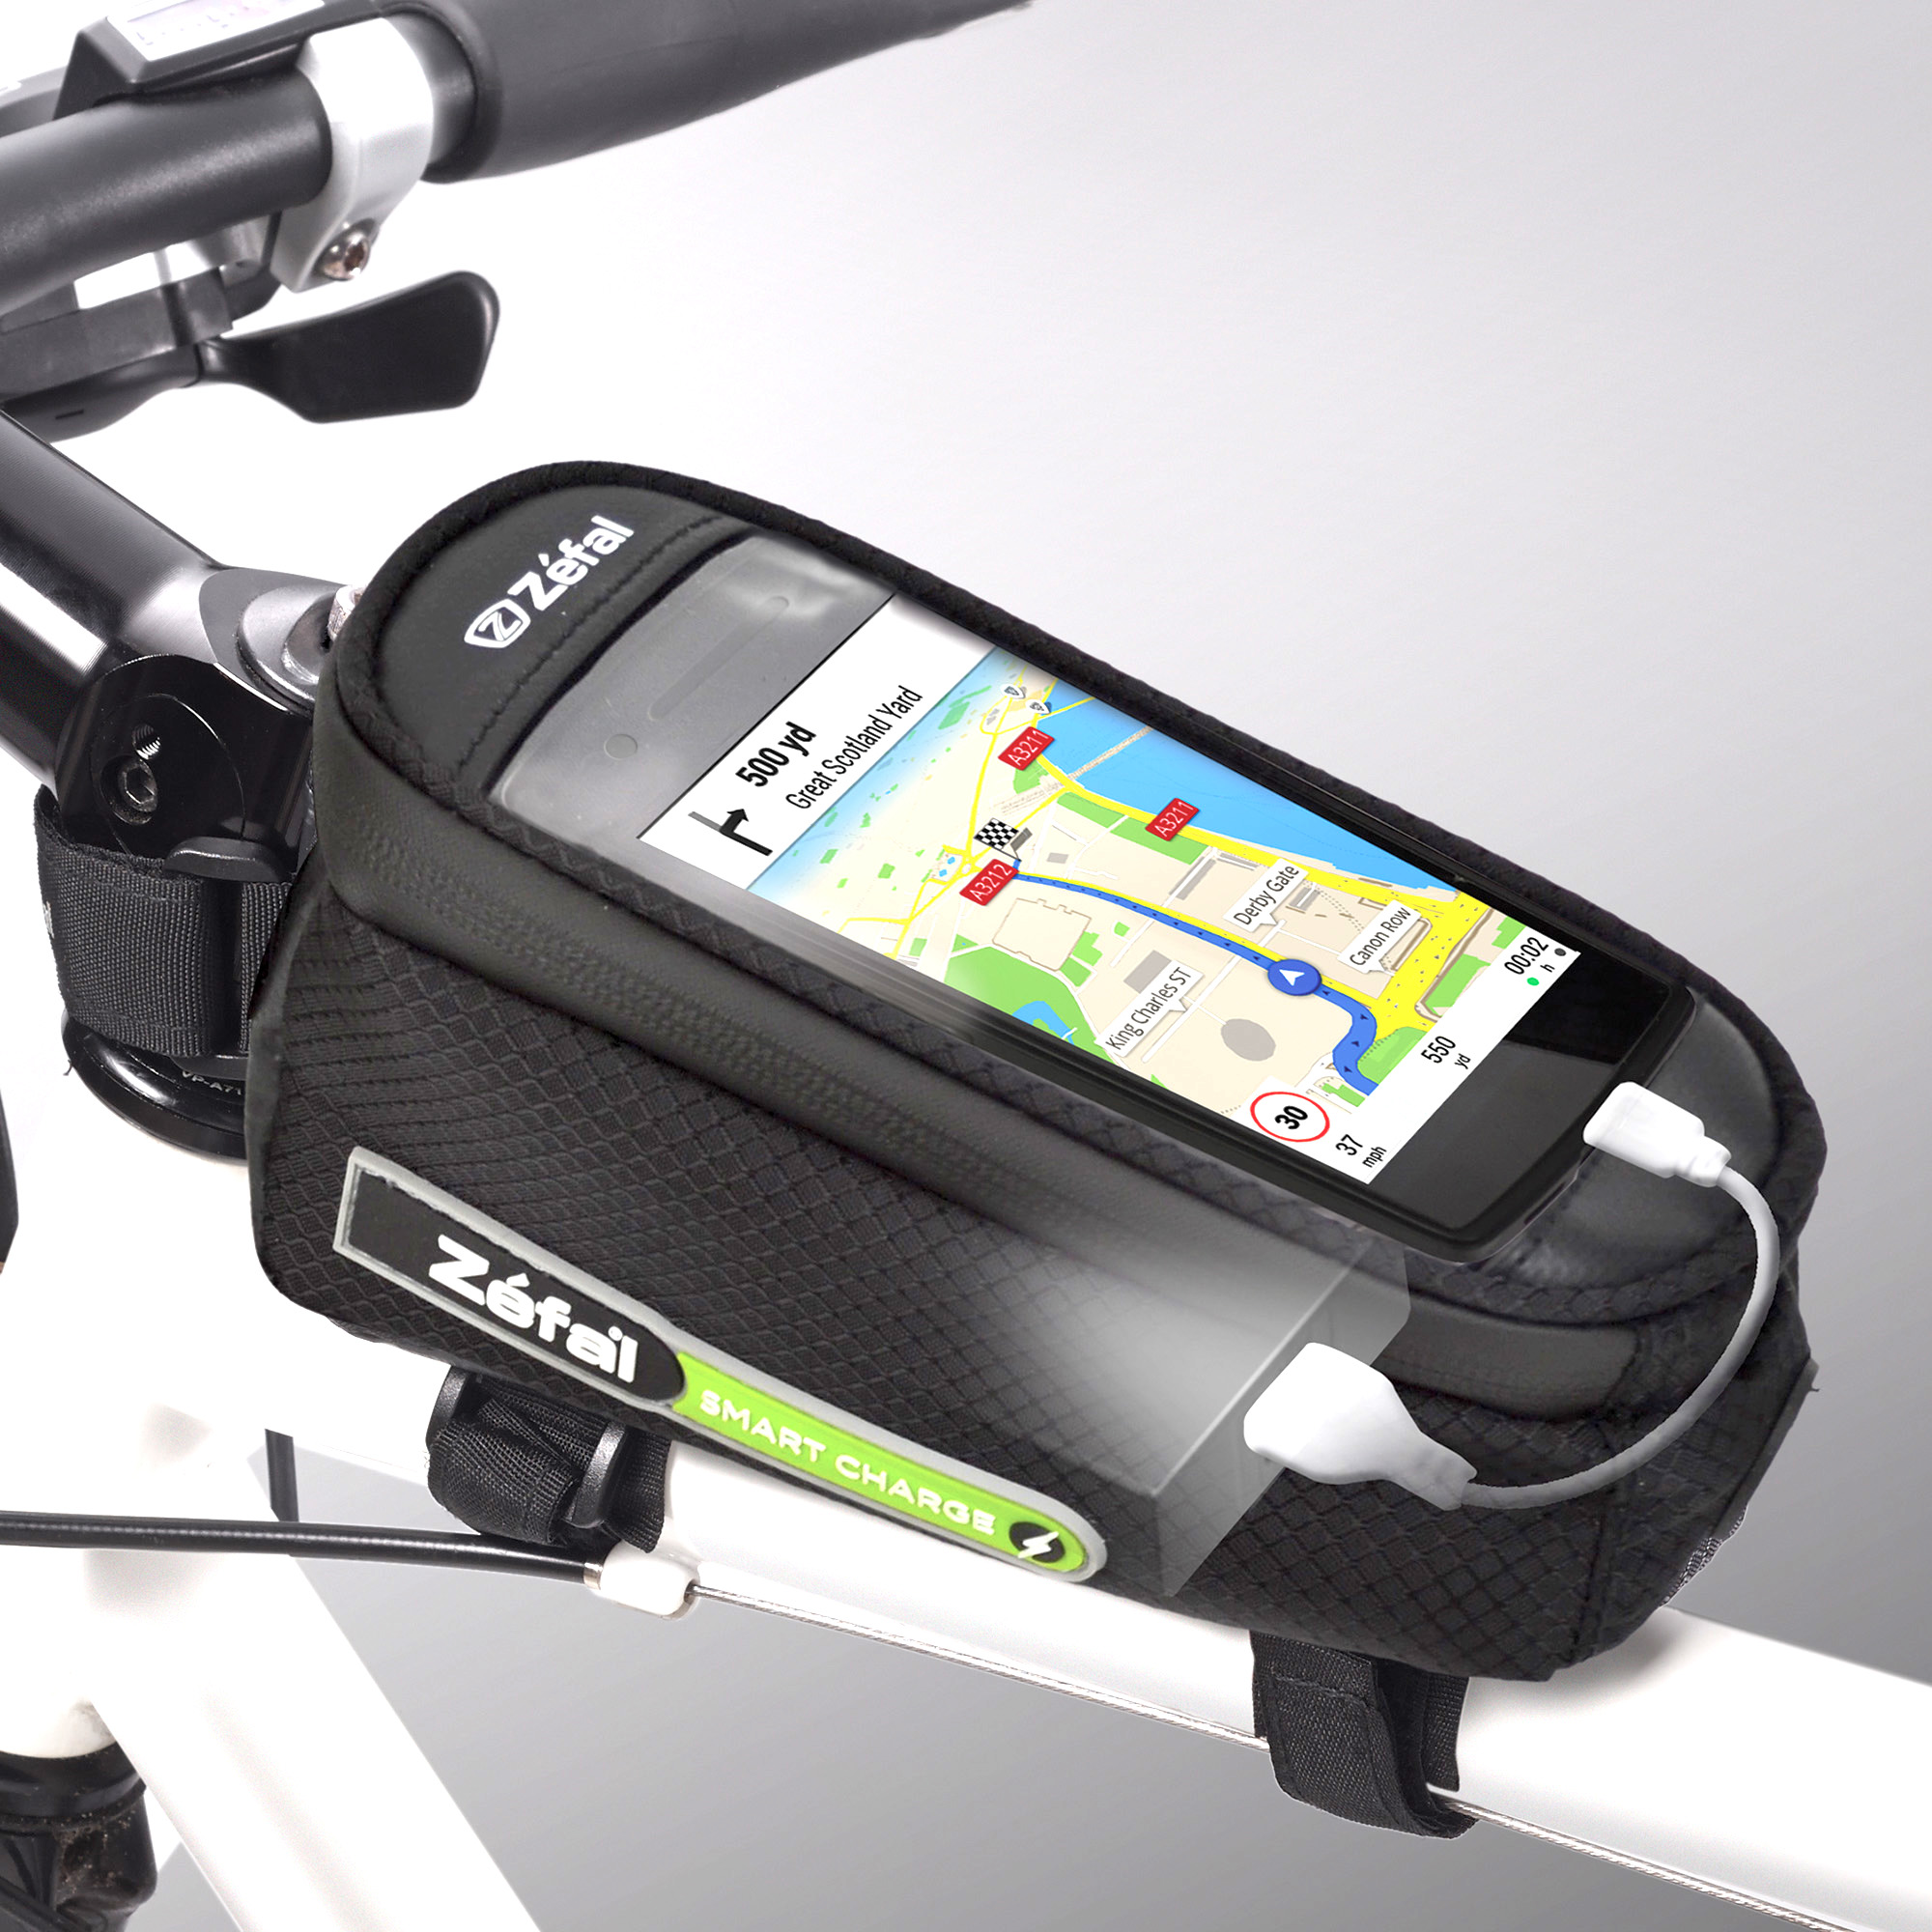 Zefal Smart Phone Charge Bike Bag - Battery Included (Rechargeable - Store, Use, and Charge)